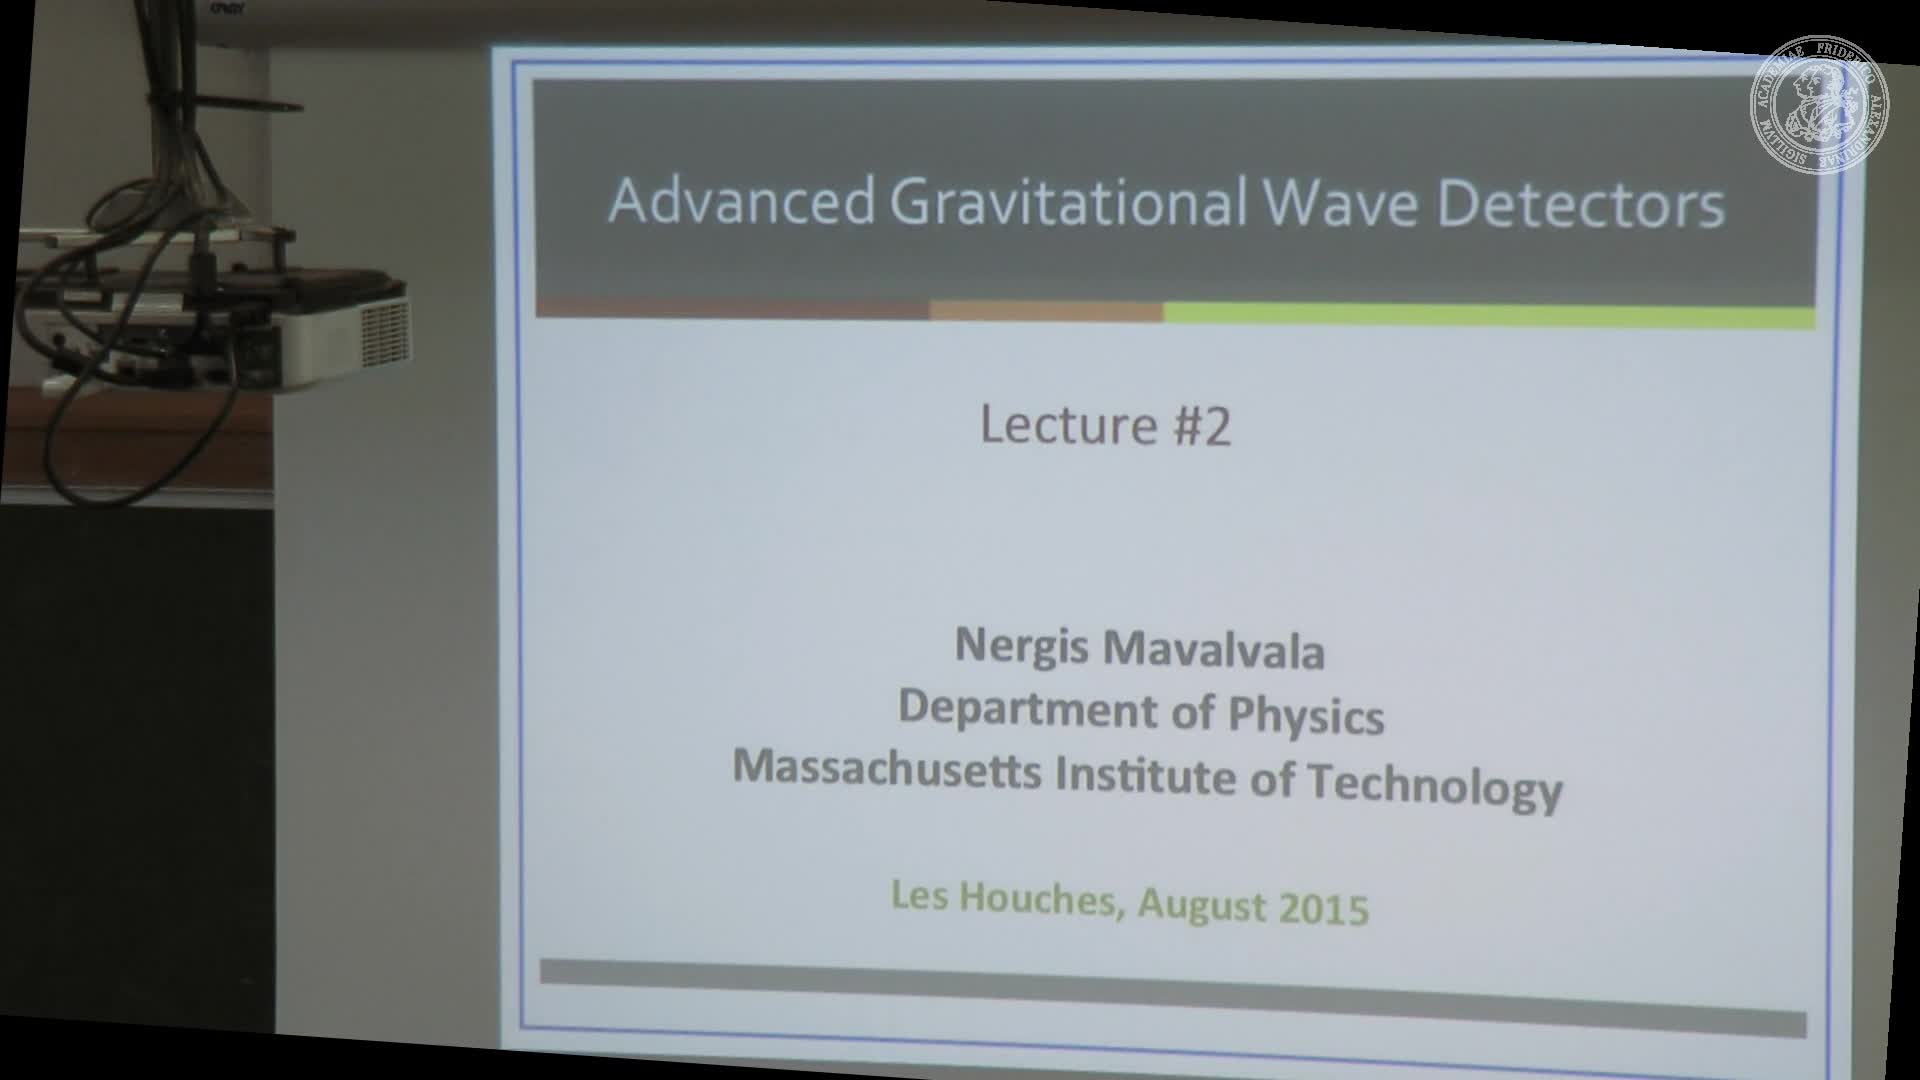 Gravitational Waves: Sources and Detection - 2 preview image